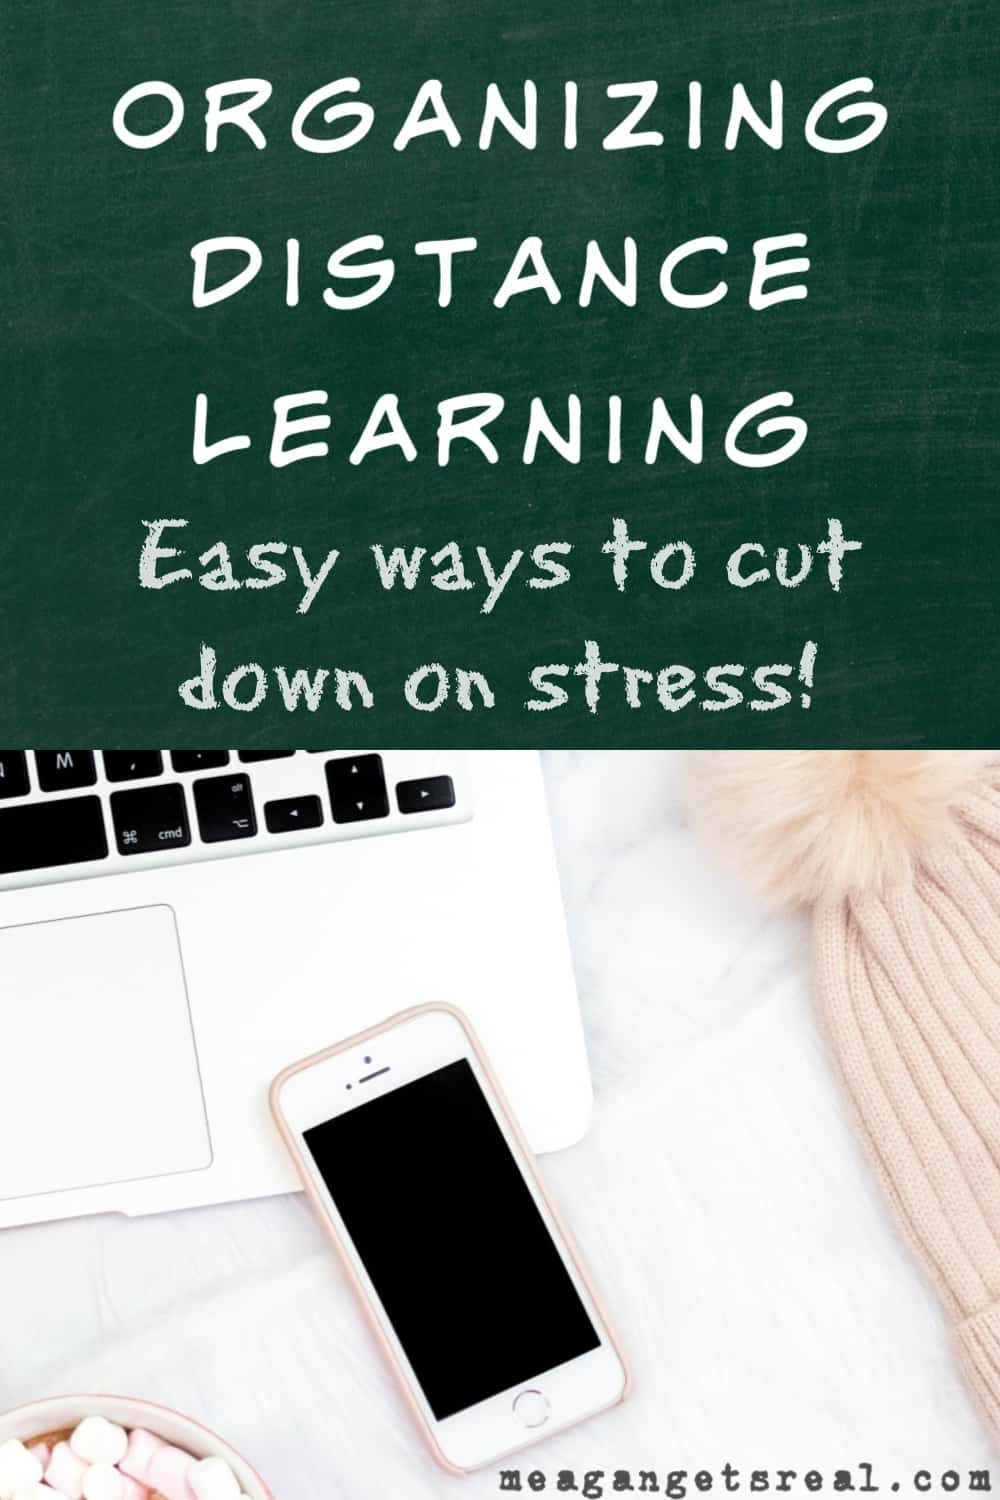 Are you struggling with organizing distance learning? Don't do it alone! I have a really easy way to help you organize and regain your peace!